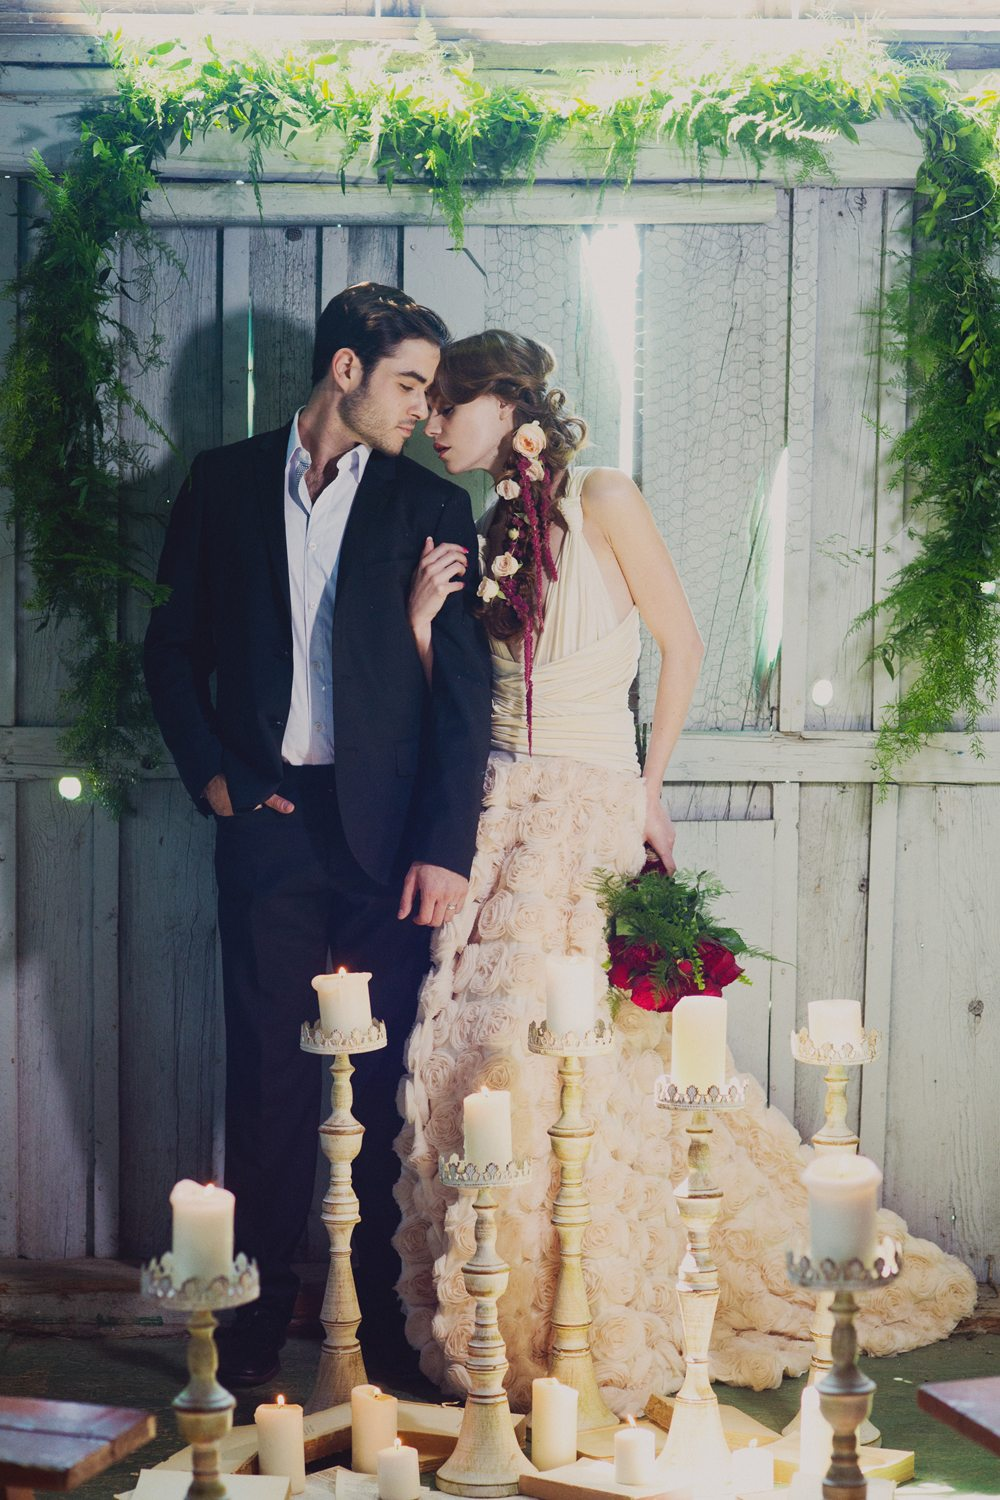 A Romantic Romeo And Juliet Themed Wedding Shoot